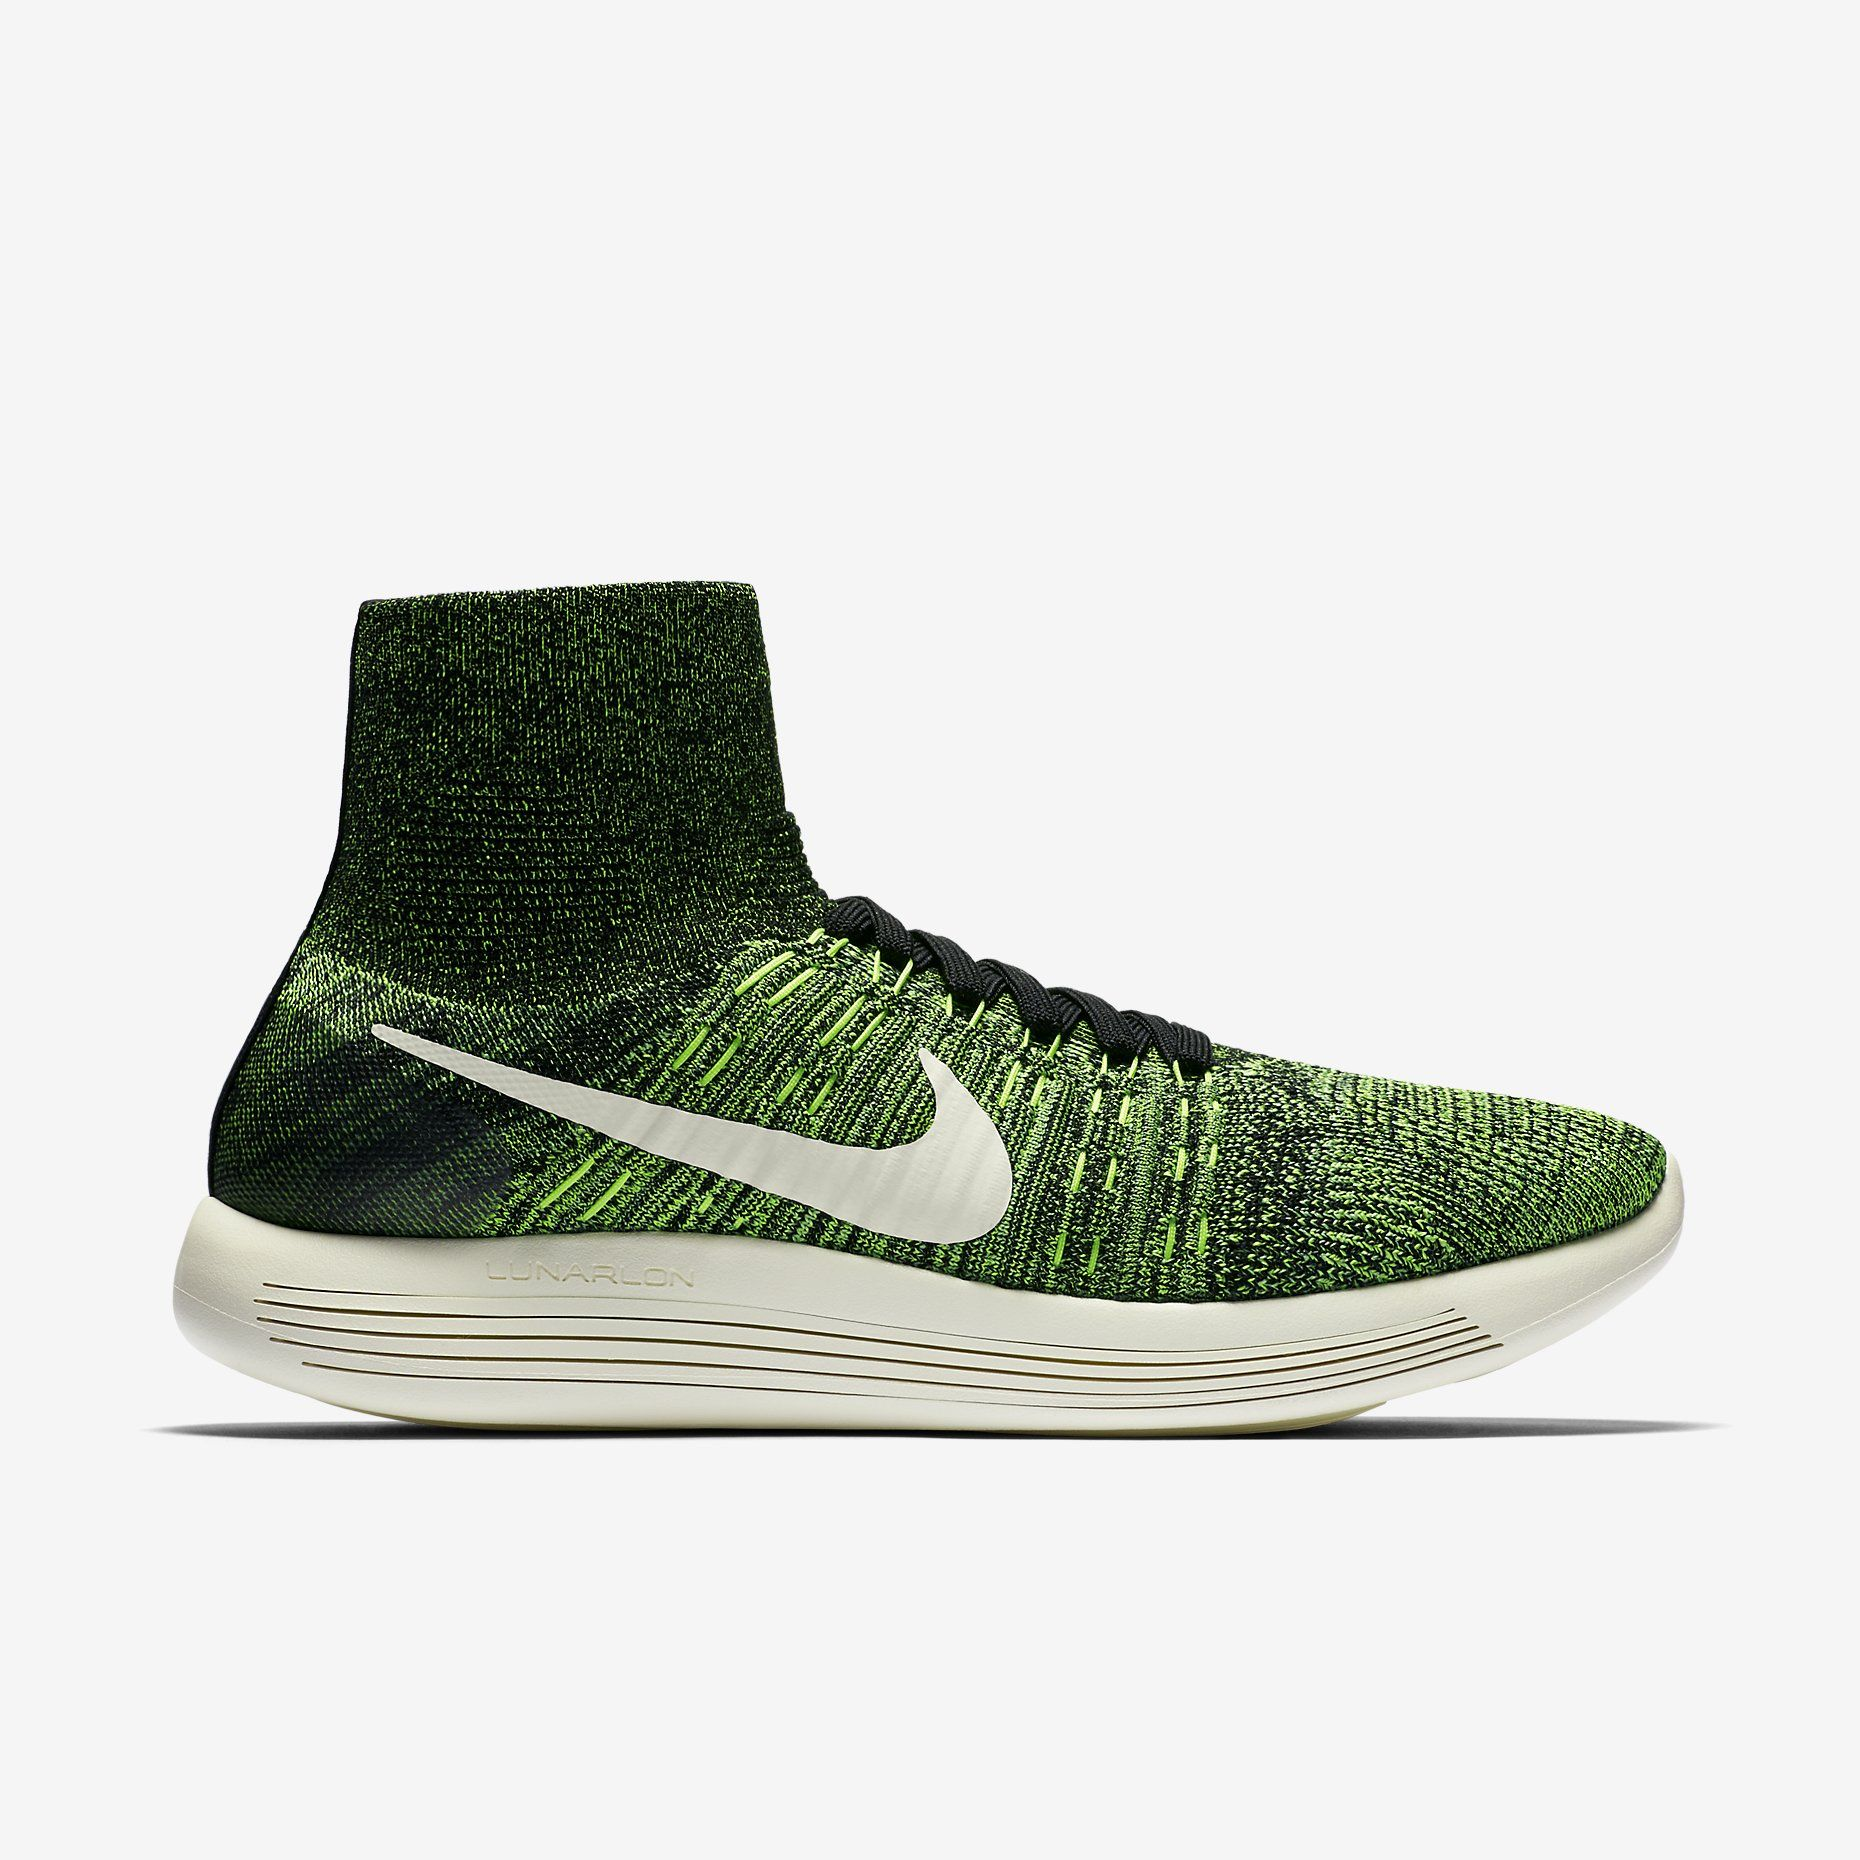 premium selection 9d164 ab220 Nike LunarEpic Flyknit MP Midnight Pack   SneakerNews.com